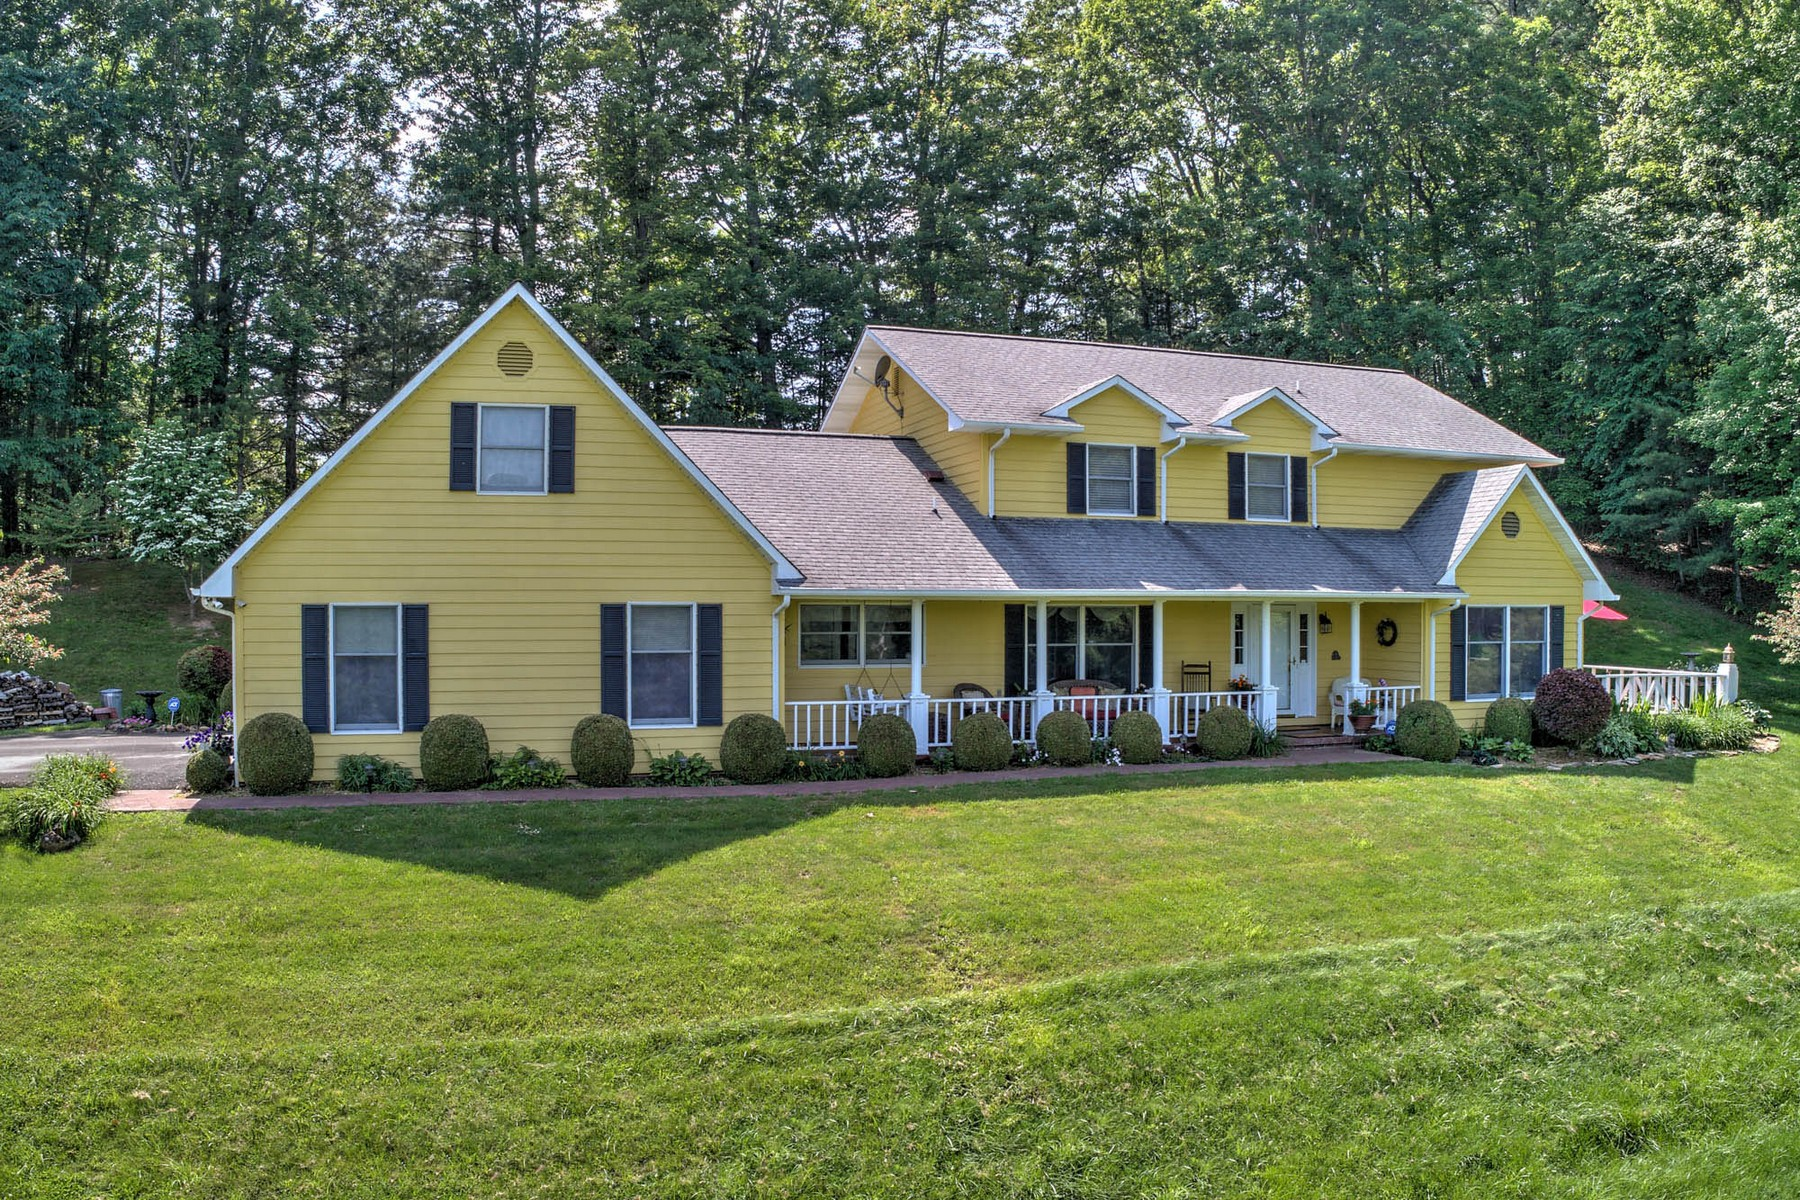 Single Family Home for Sale at Mountain View Estate 200 Ivy Hill Private Drive Mountain City, Tennessee 37683 United States